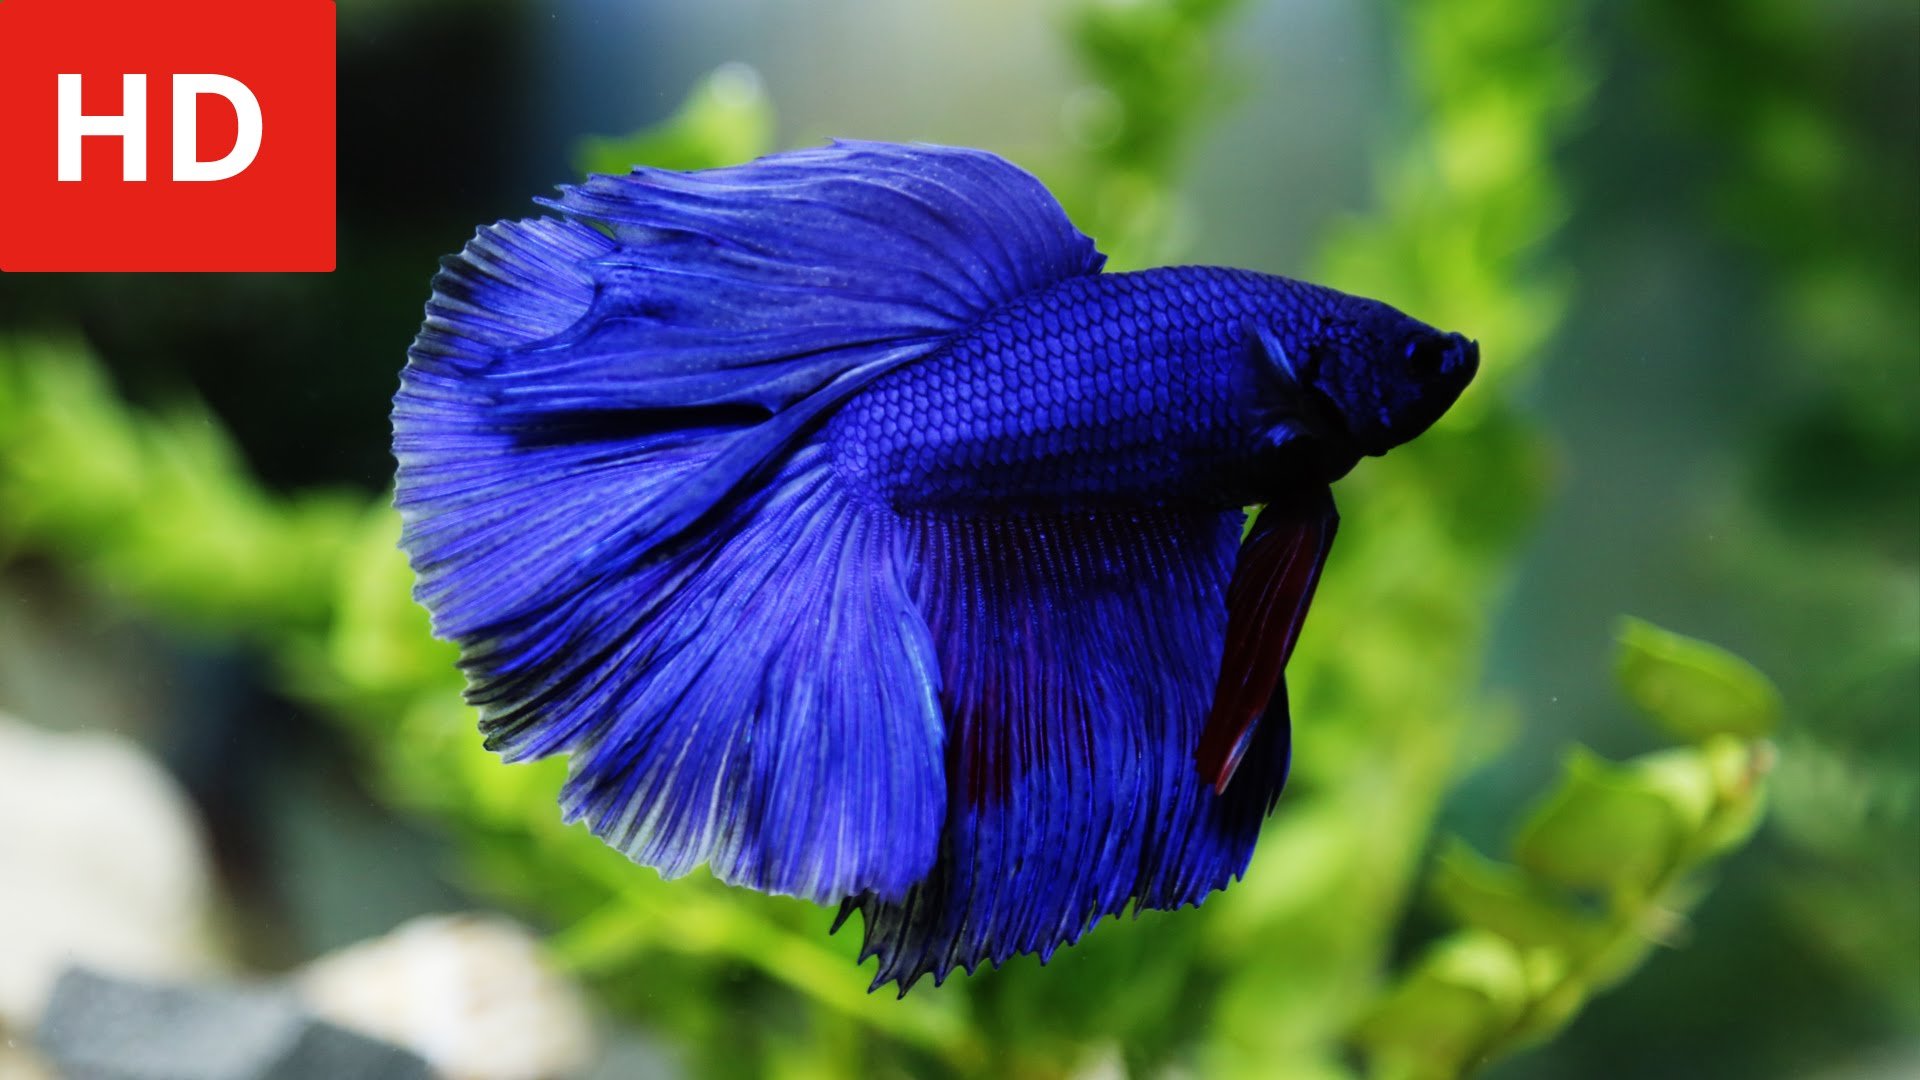 Download Wallpaper Aquarium 3d Betta Fish Backgrounds Pixelstalk Net